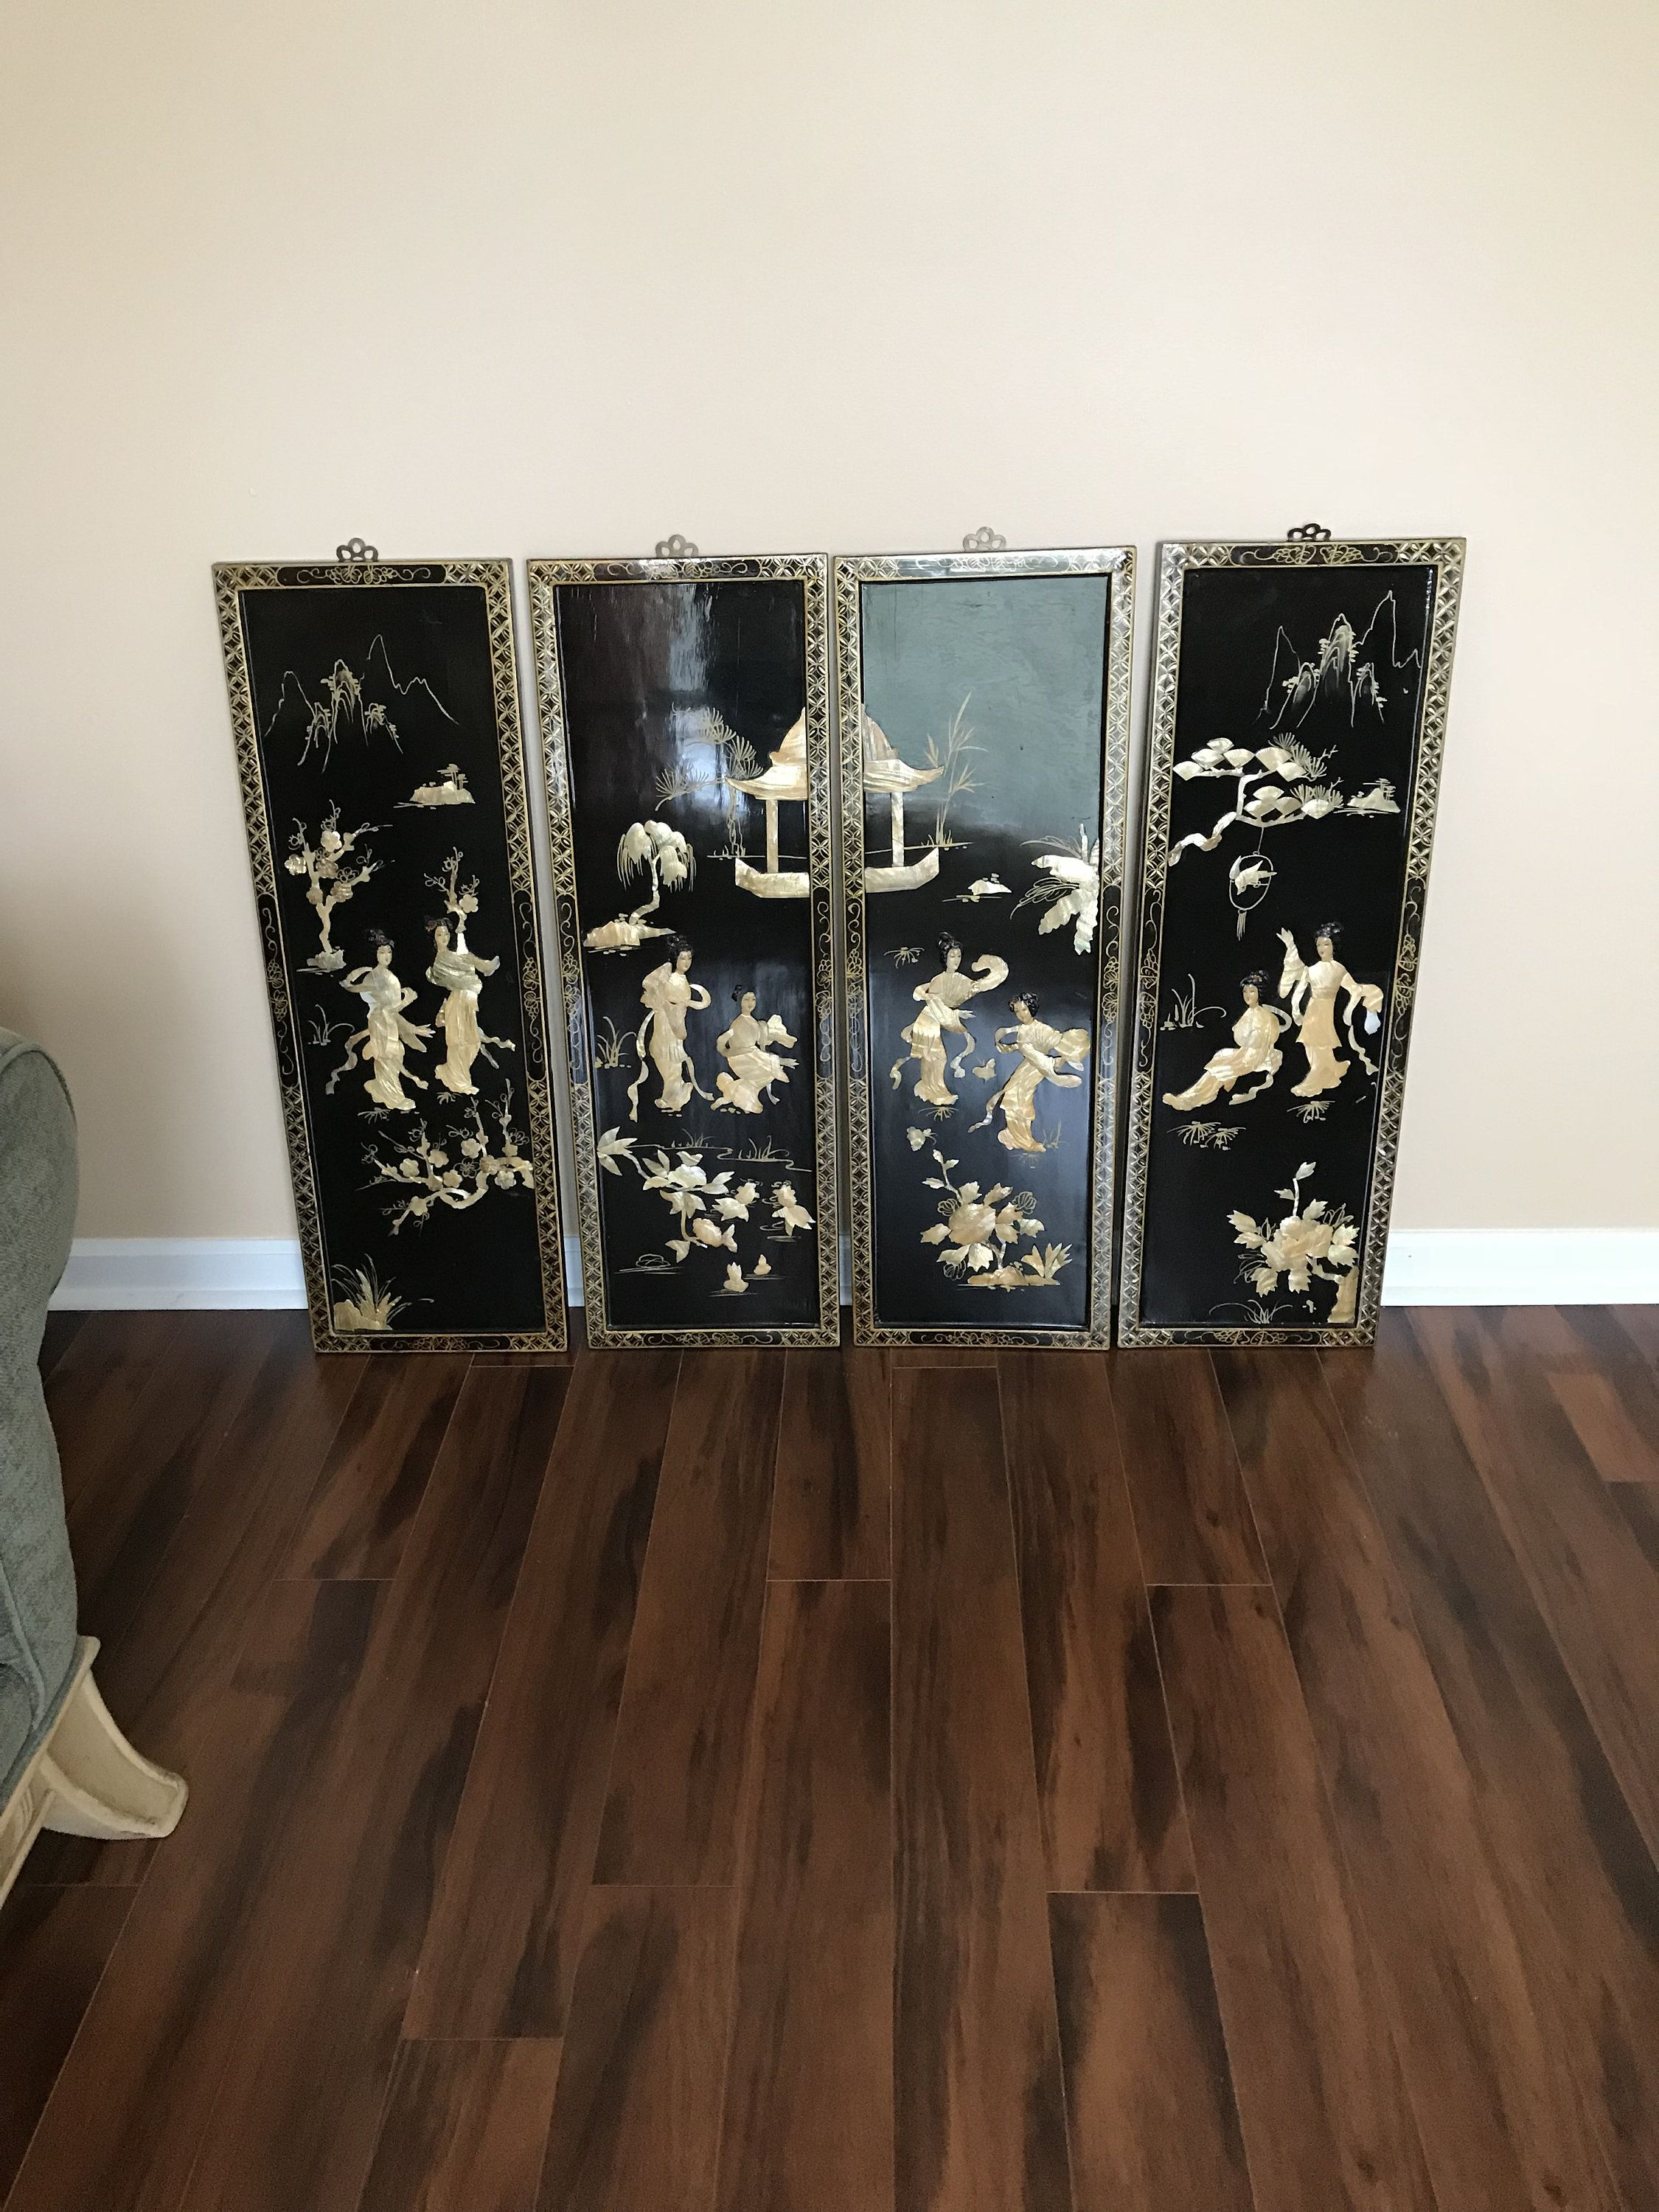 4 Magnificent Asian Black Lacquer And Mother Of Pearl Wall Panels Geisha Paa Garden Scene By Mulherinlane On Etsy